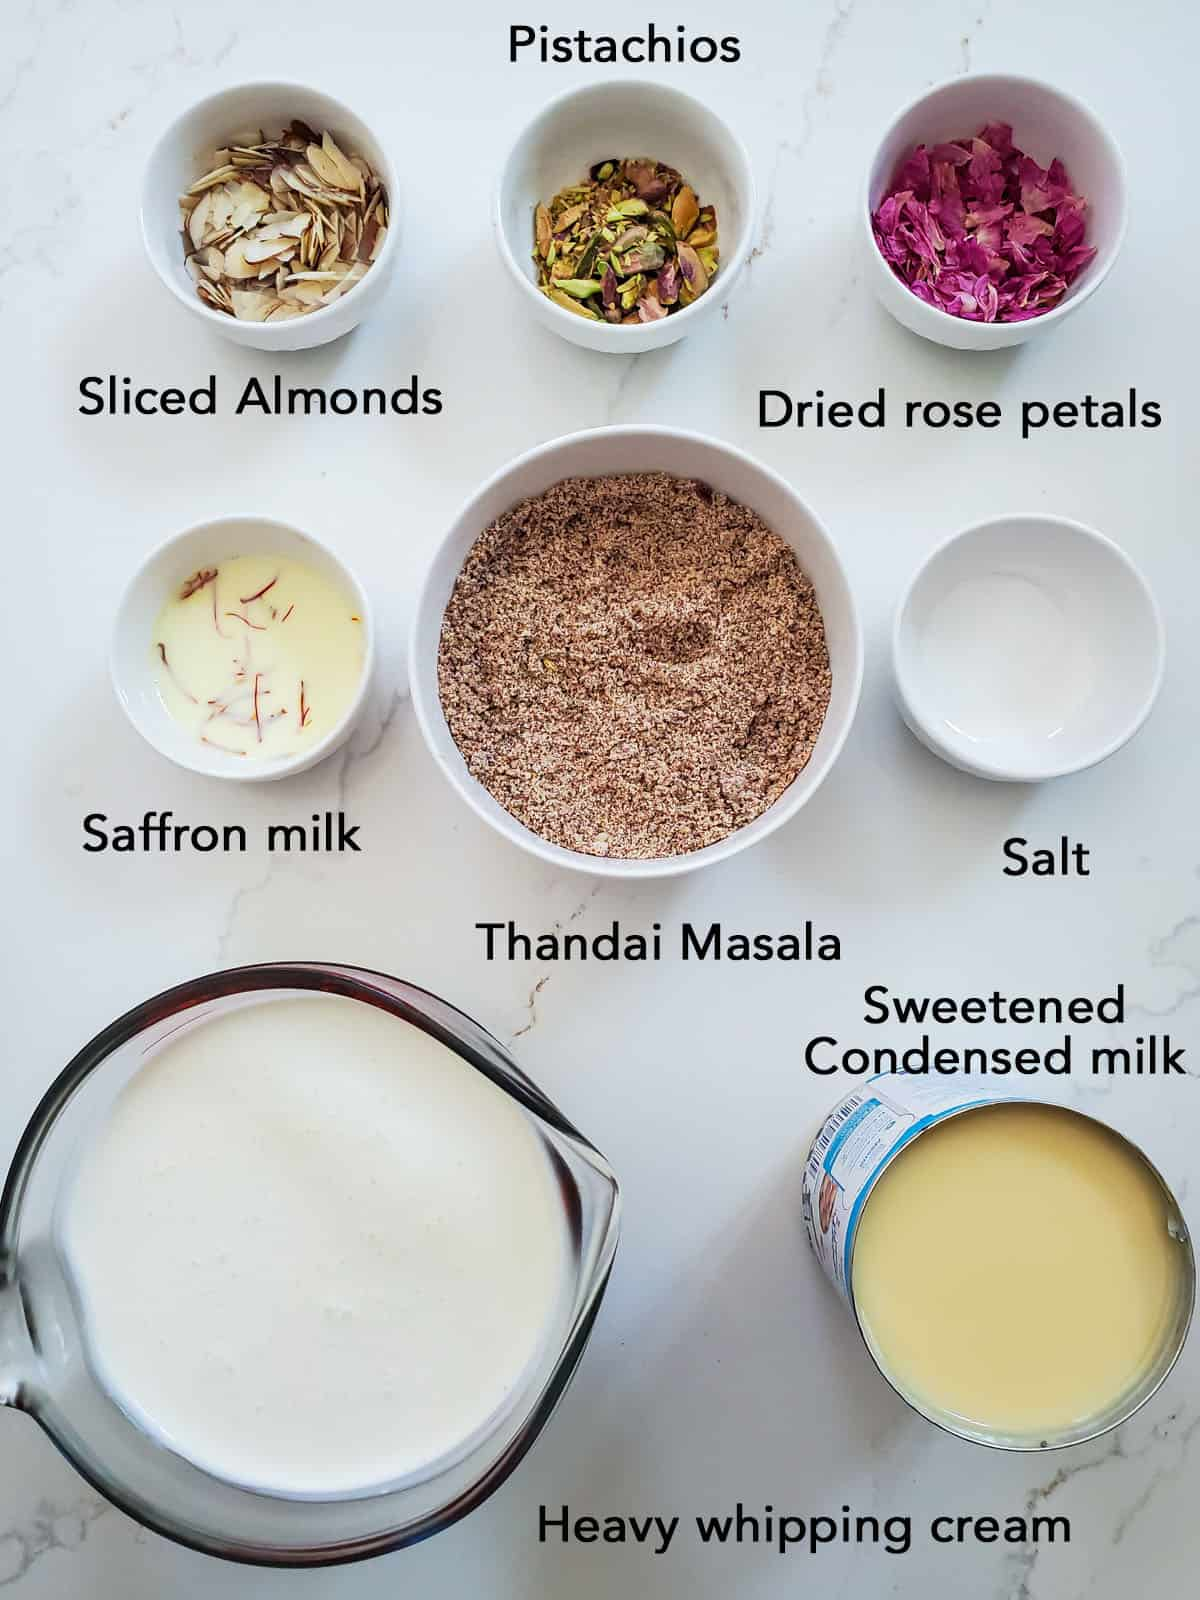 Thandai icecream ingredients in bowls on white surface